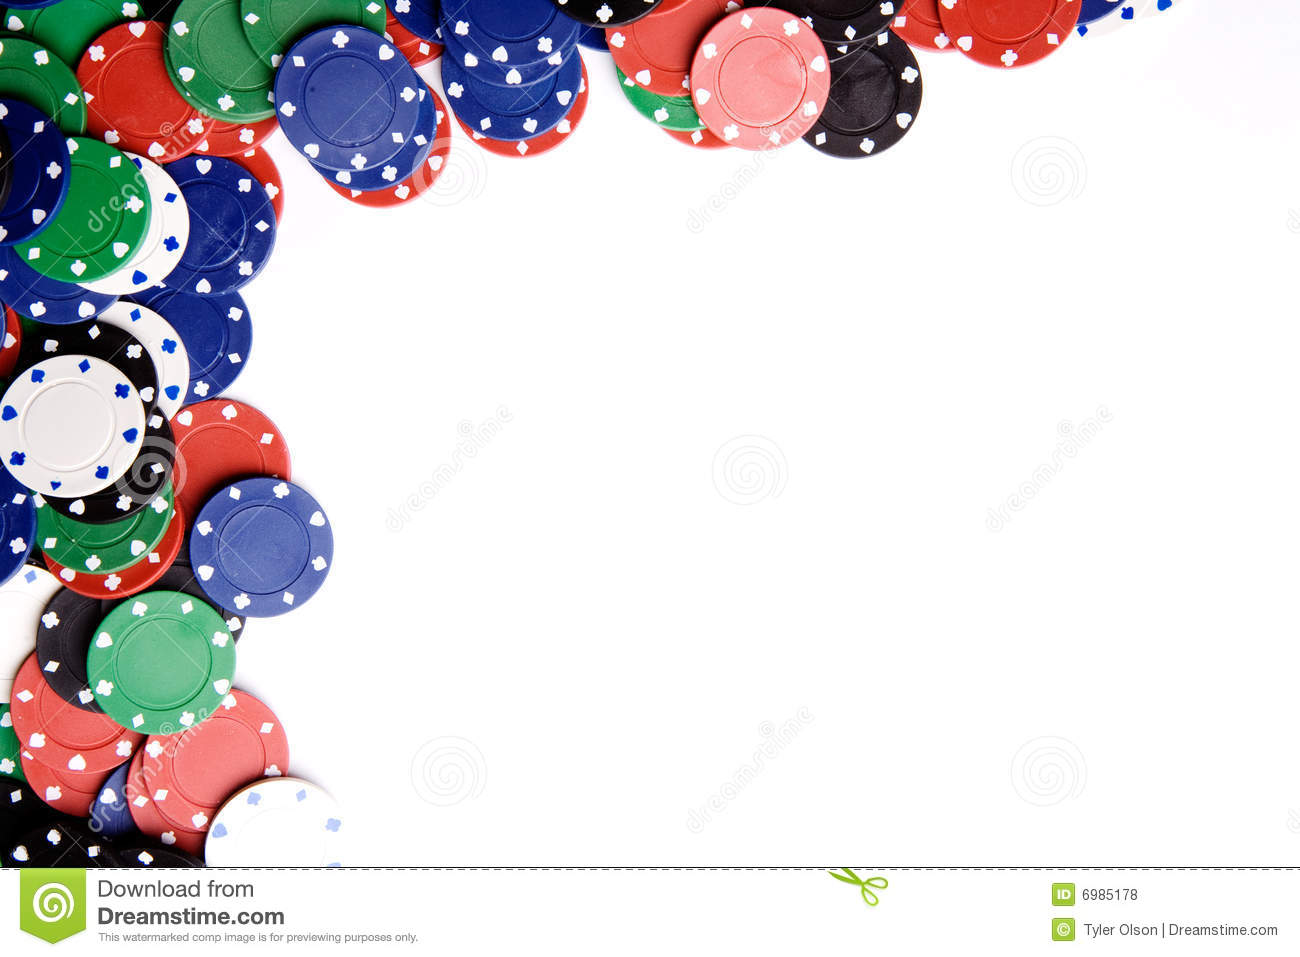 Free holiday casino clip art 13